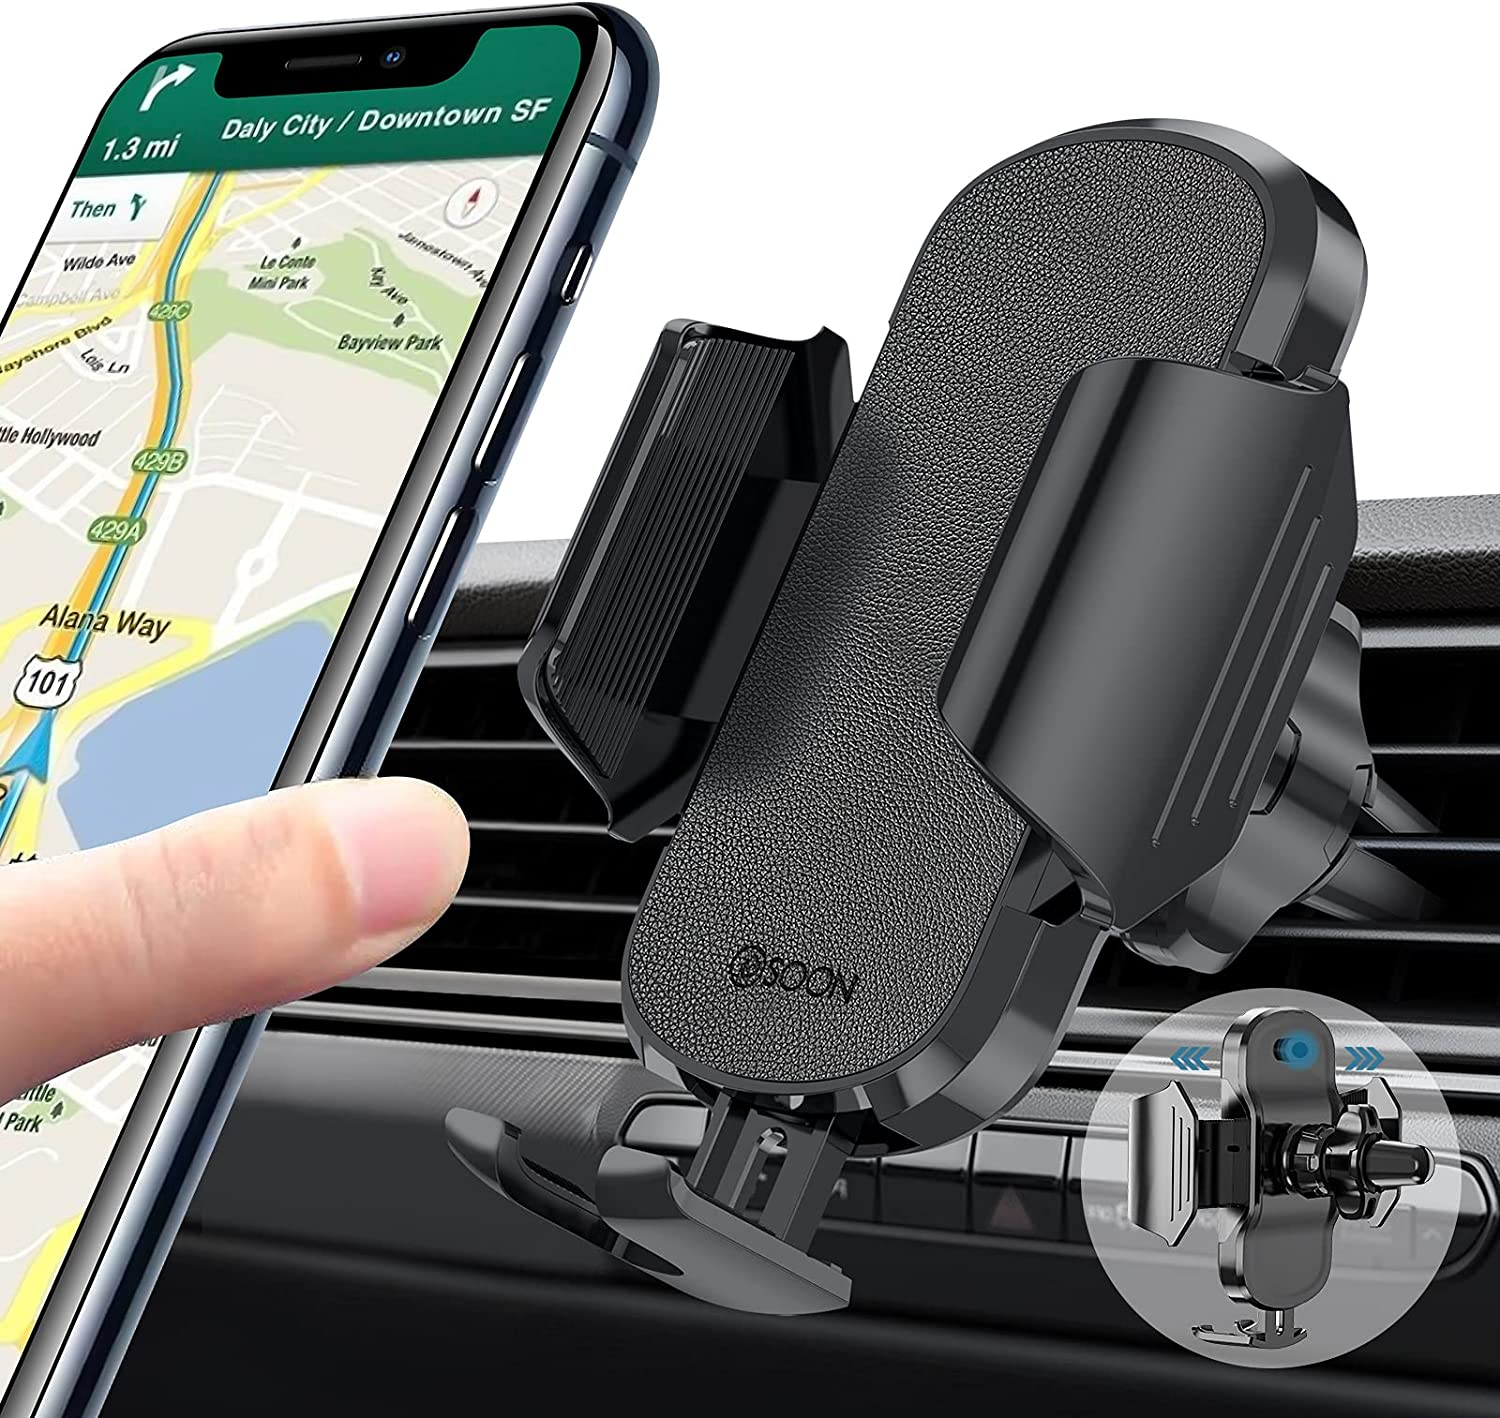 BSOON Car Phone Holder Mount, Air Vent Phone Stand for Car, Universal Smartphone Automobile Cradles, Compatible with iPhone 12/12 Pro/11 Pro Max/8 Plus/8/X Samsung Galaxy S20/S20+/S10/S9/Note 20/10